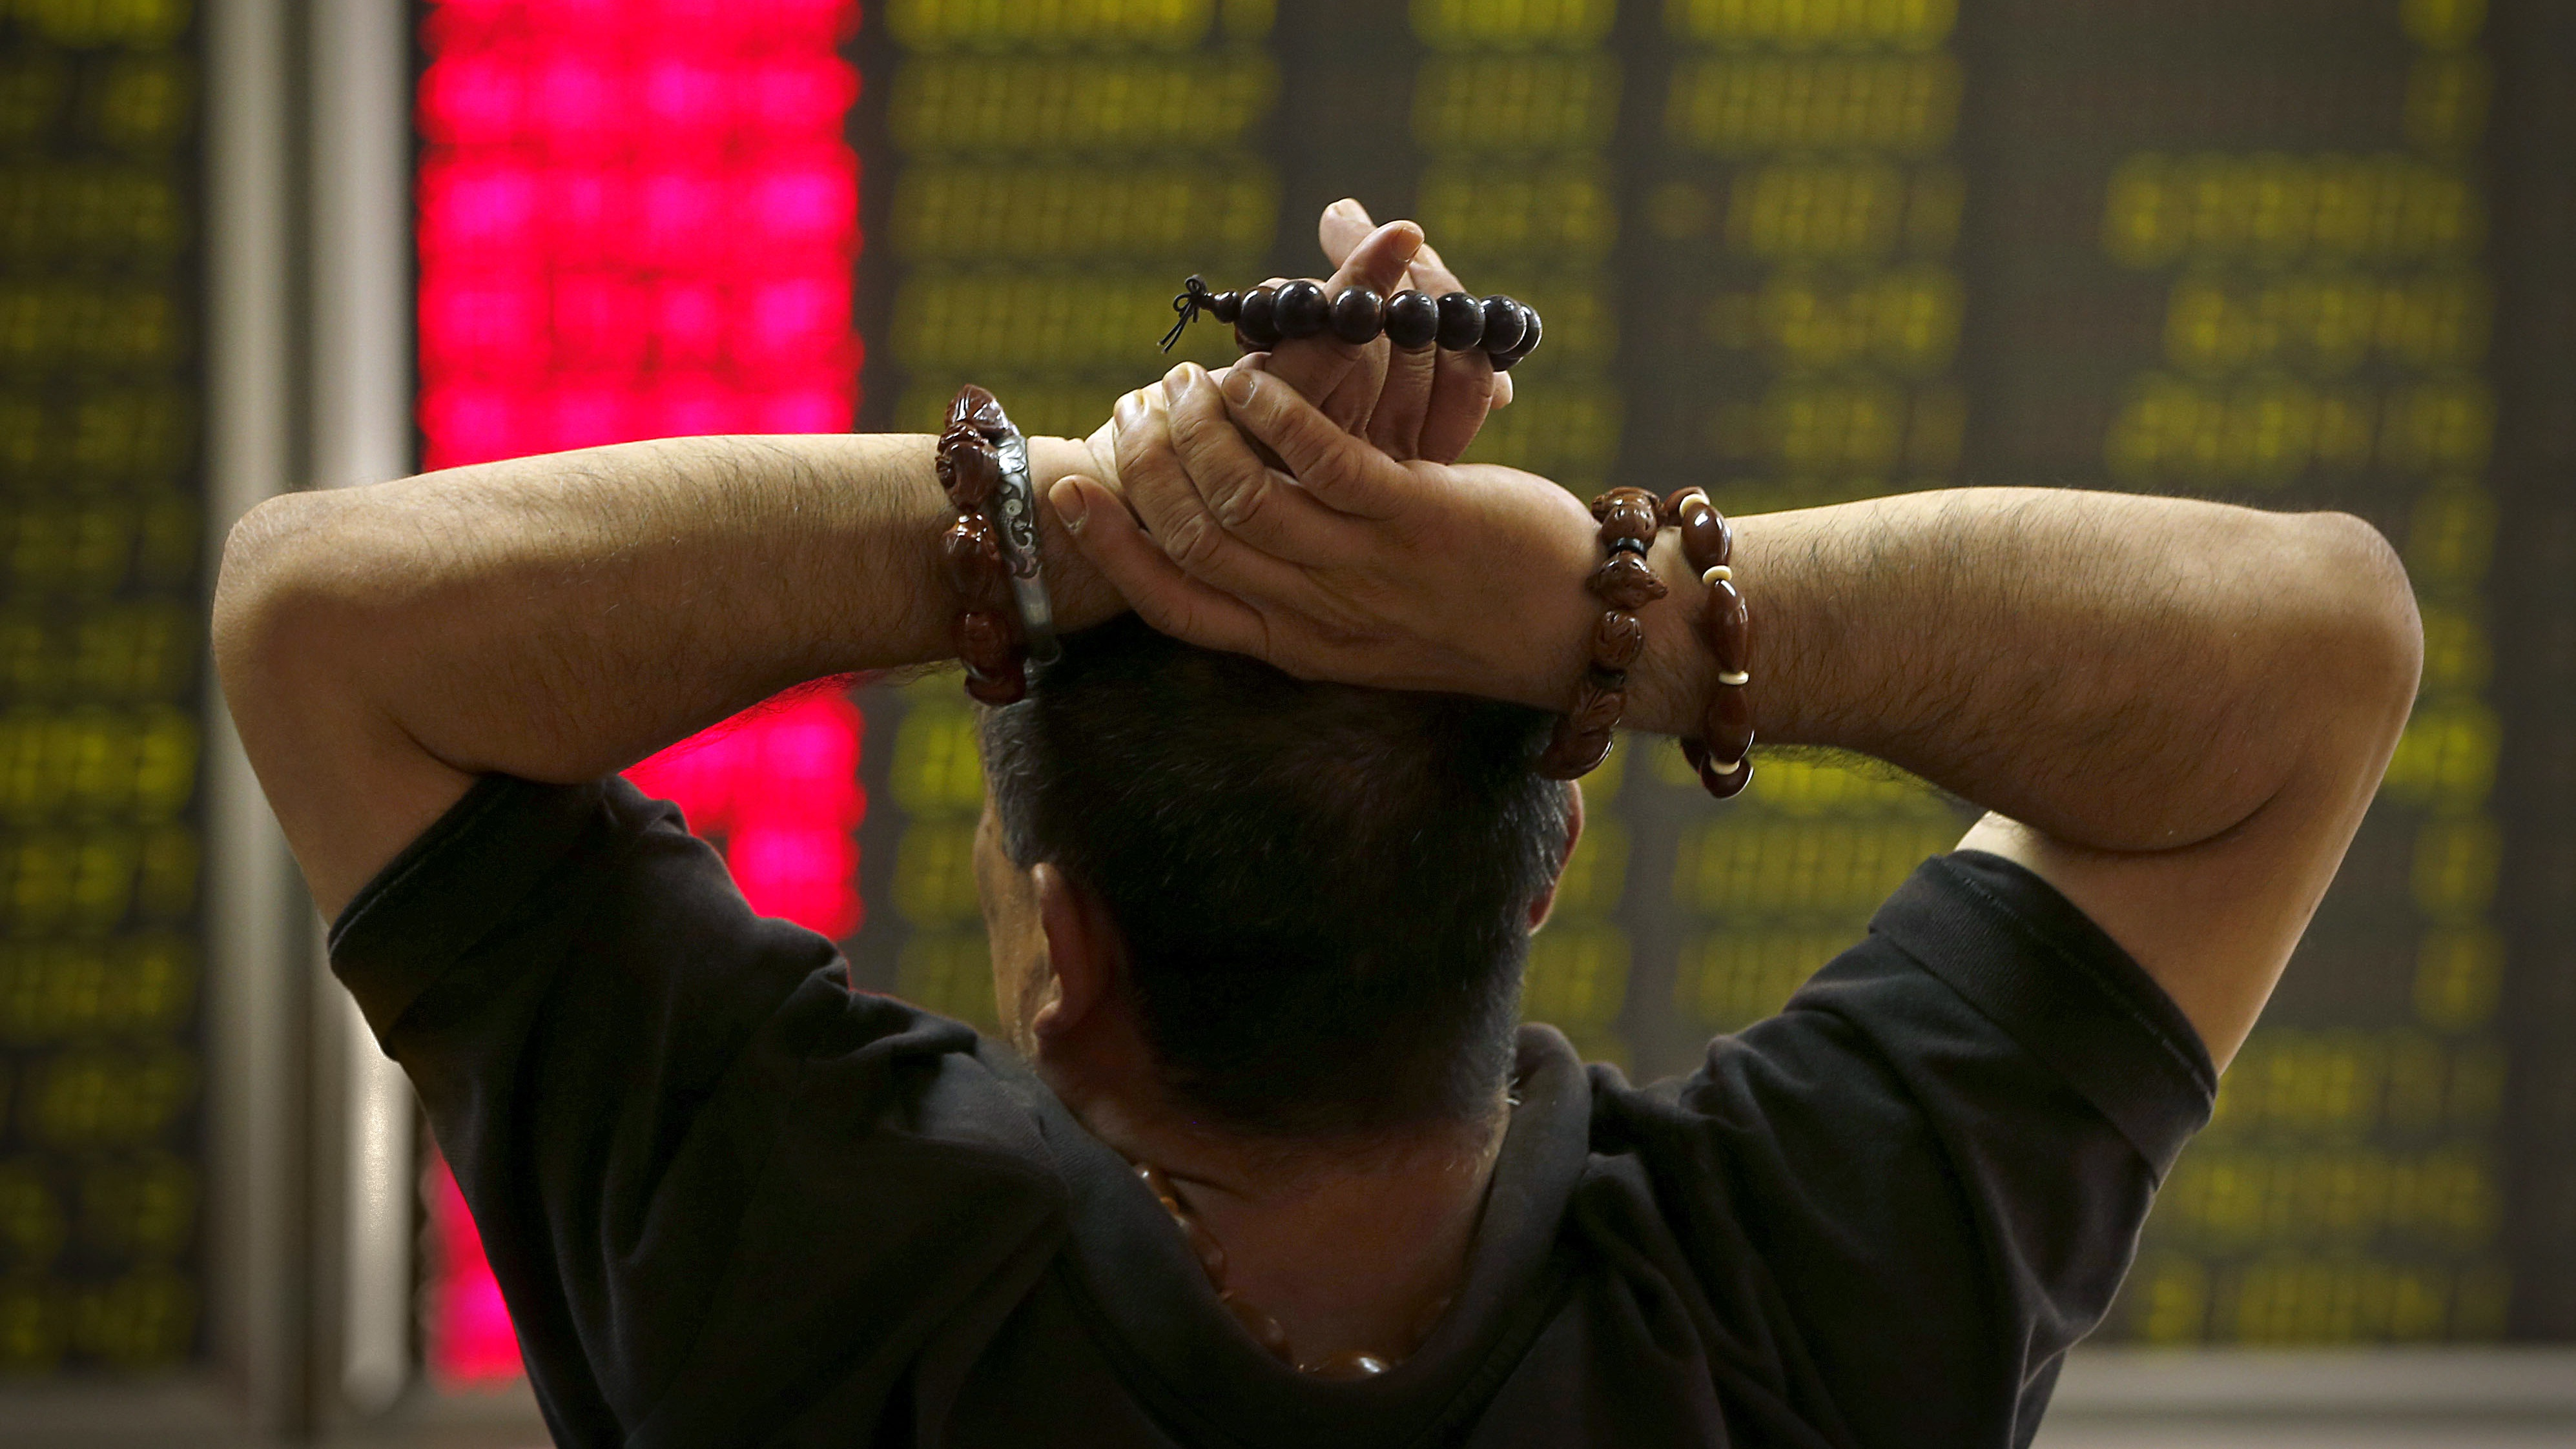 A Chinese investor monitors stock prices at a brokerage house in Beijing, Monday, Aug. 24, 2015. Stocks tumbled across Asia on Monday as investors shaken by the sell-off last week on Wall Street unloaded shares in practically every sector.